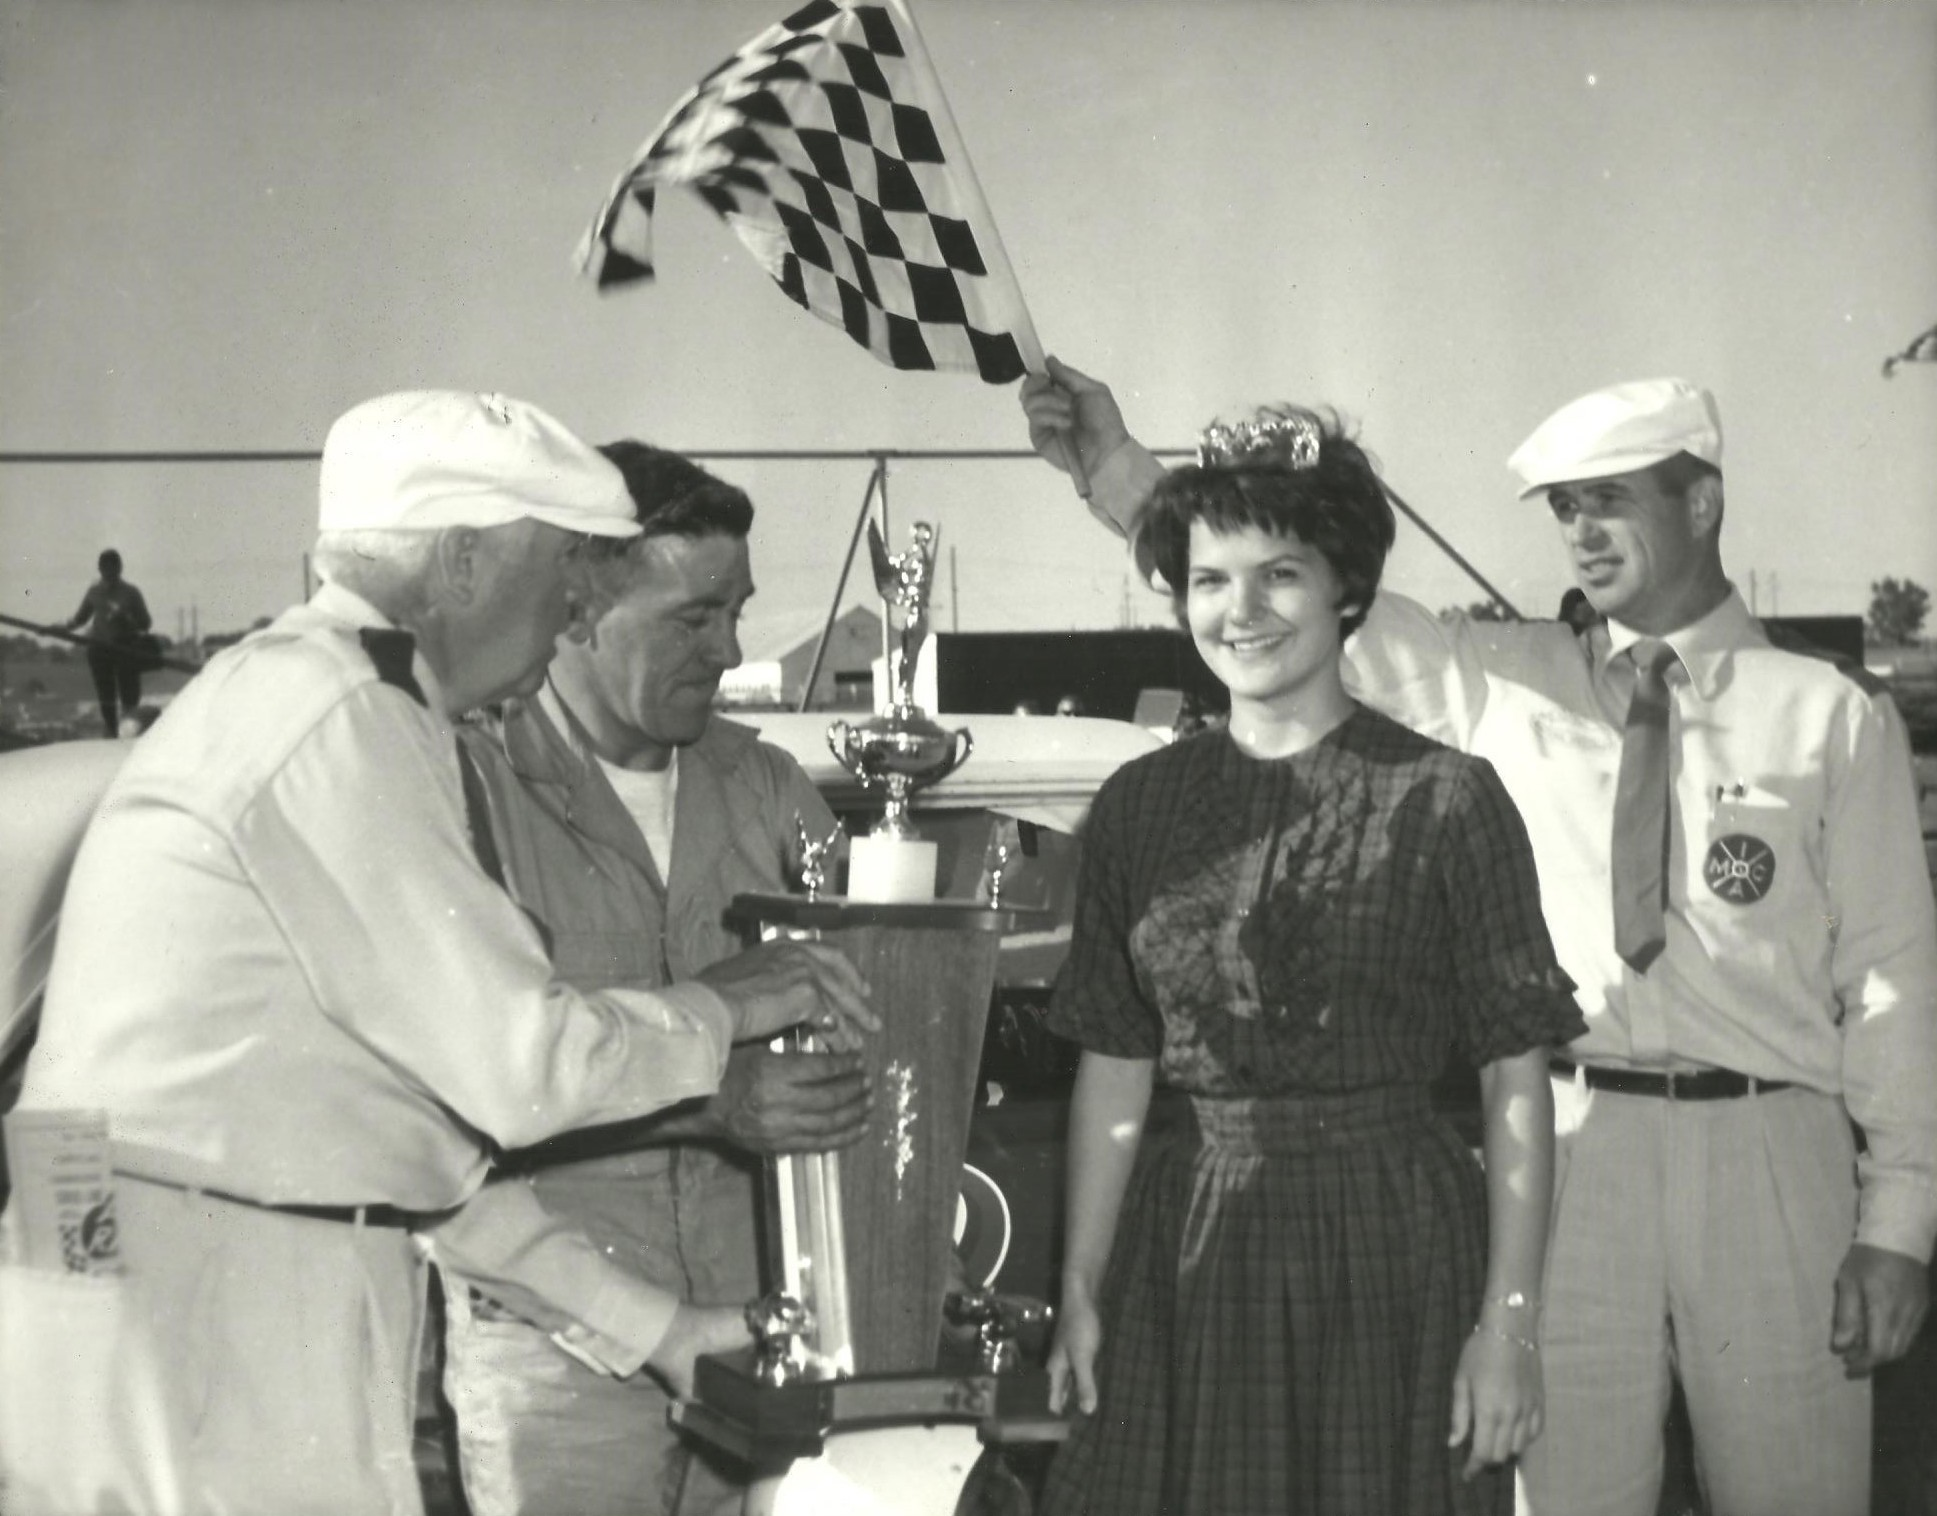 Ernie Derr at home in VL 001(Lee Ackerman collection)